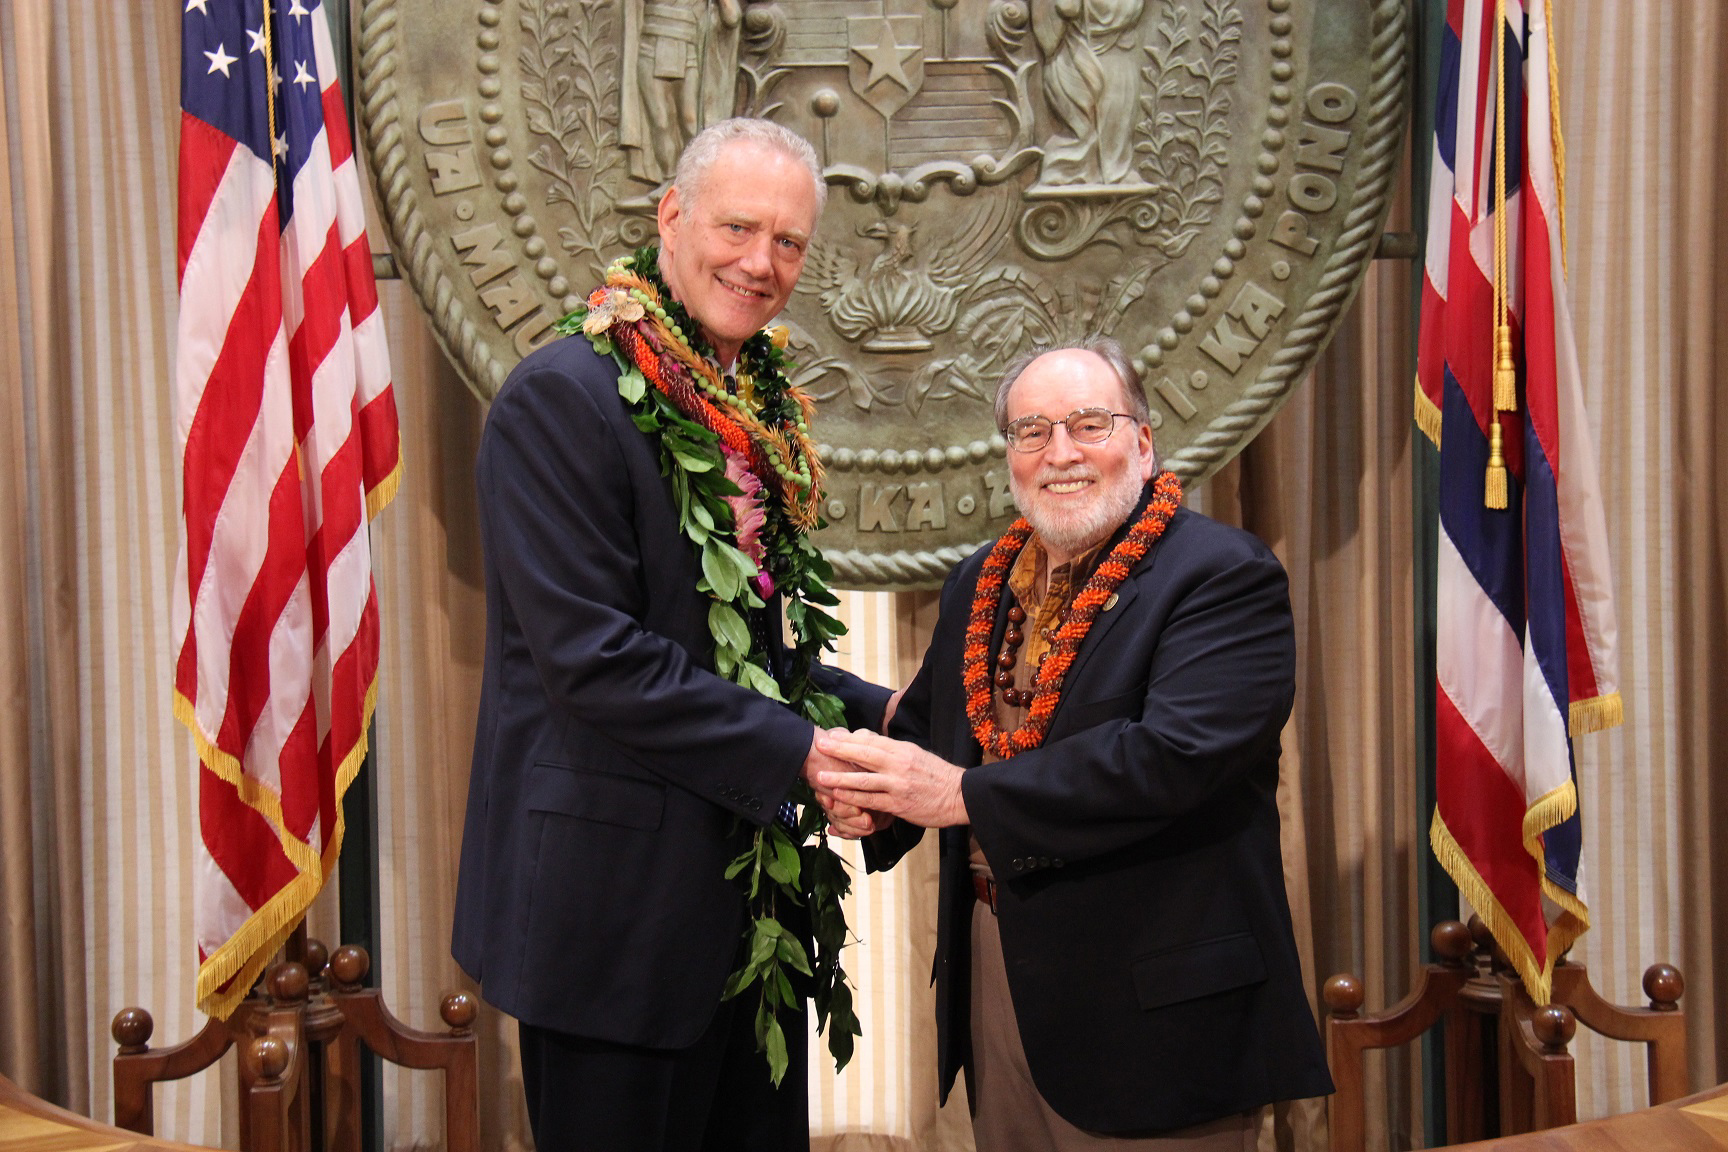 Judge Michael Wilson named to Hawaii Supreme Court